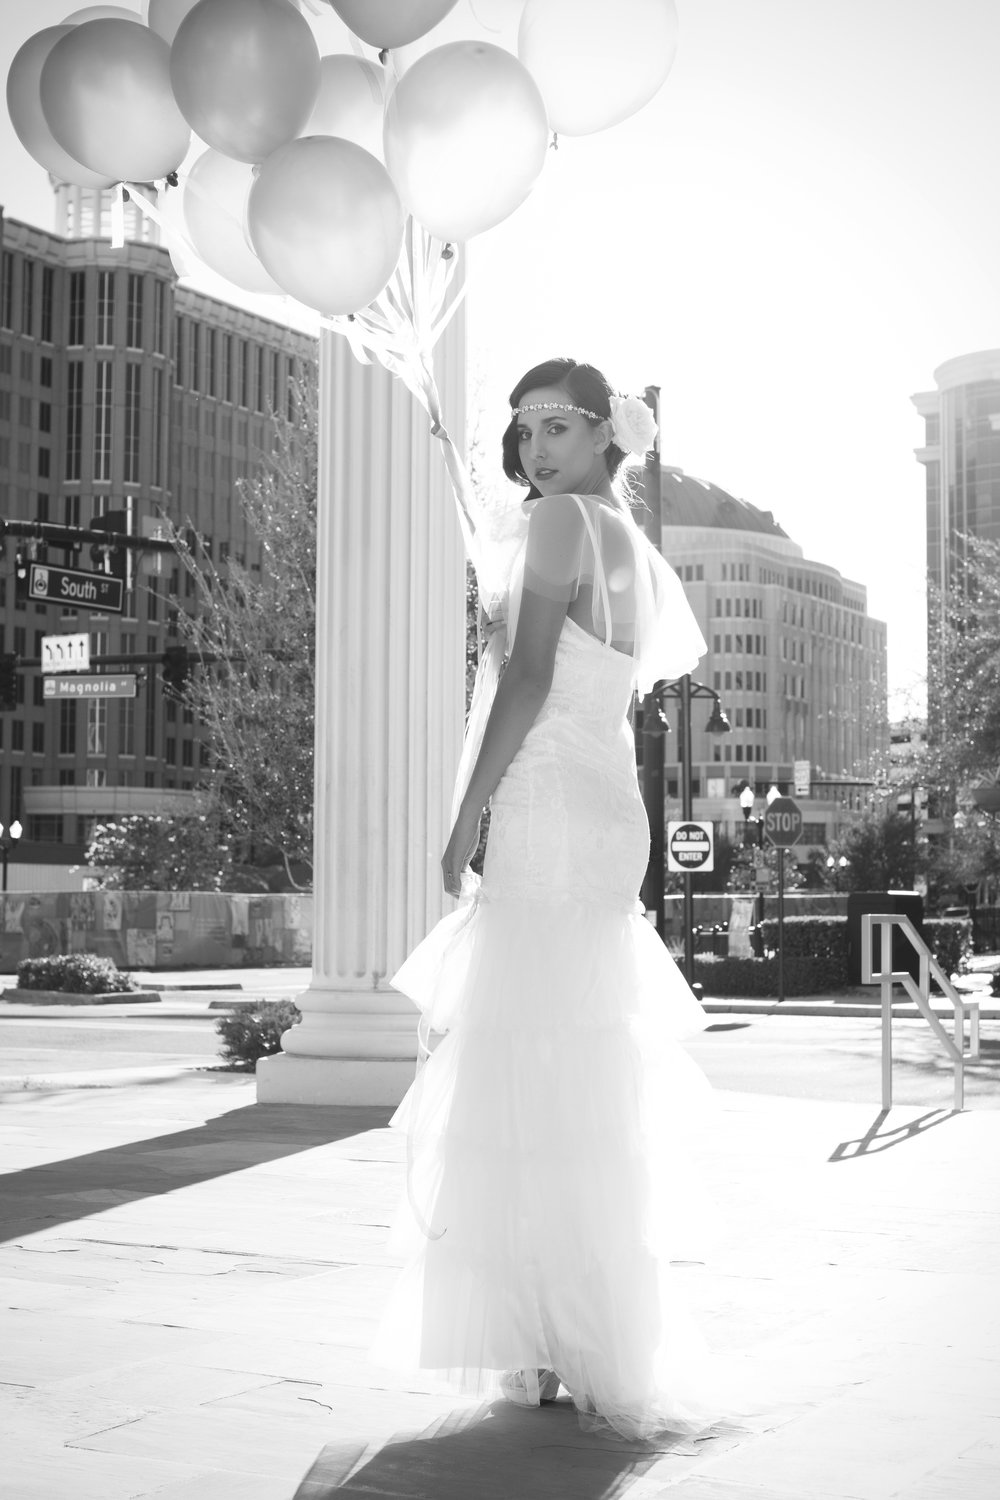 fashion_wedding_vaniaelisephotography--67.jpg